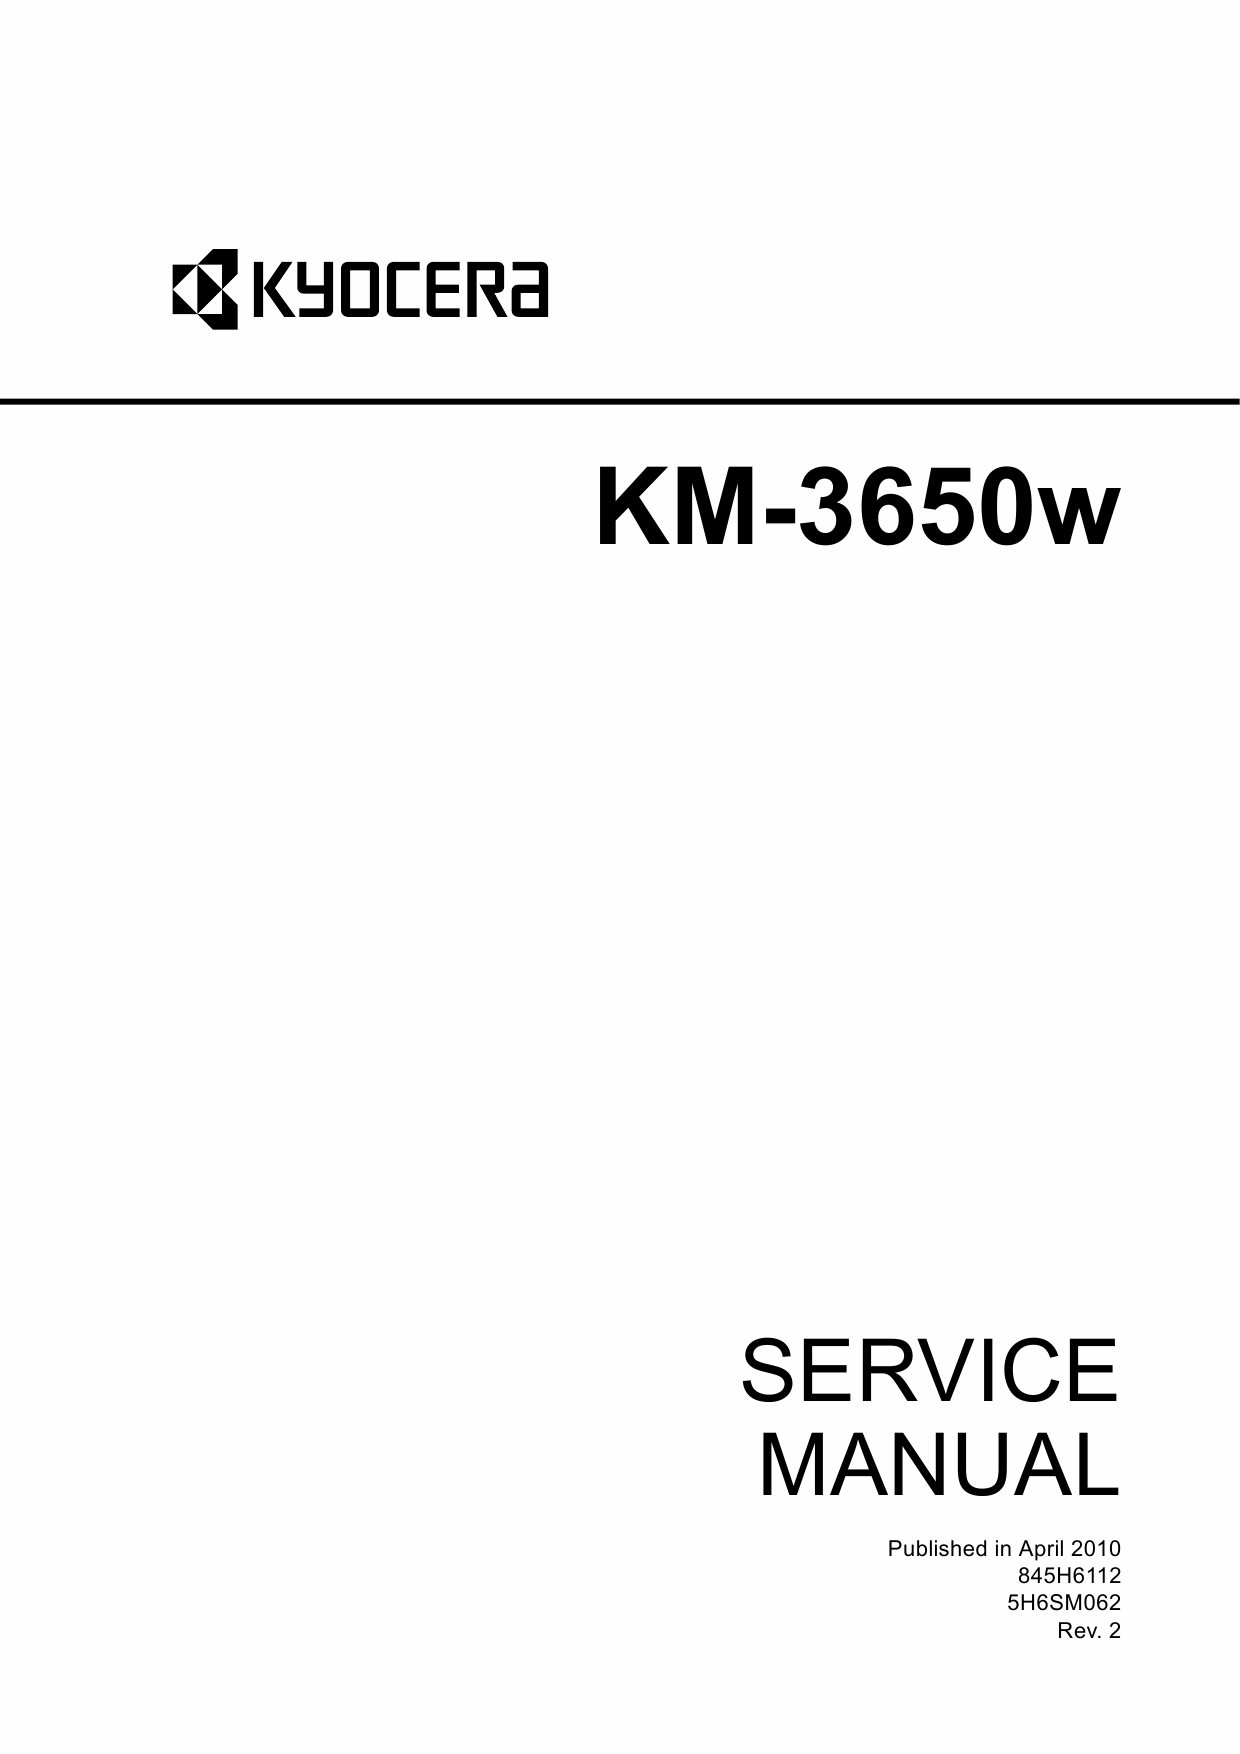 KYOCERA WideFormat KM-3650w Service Manual-1